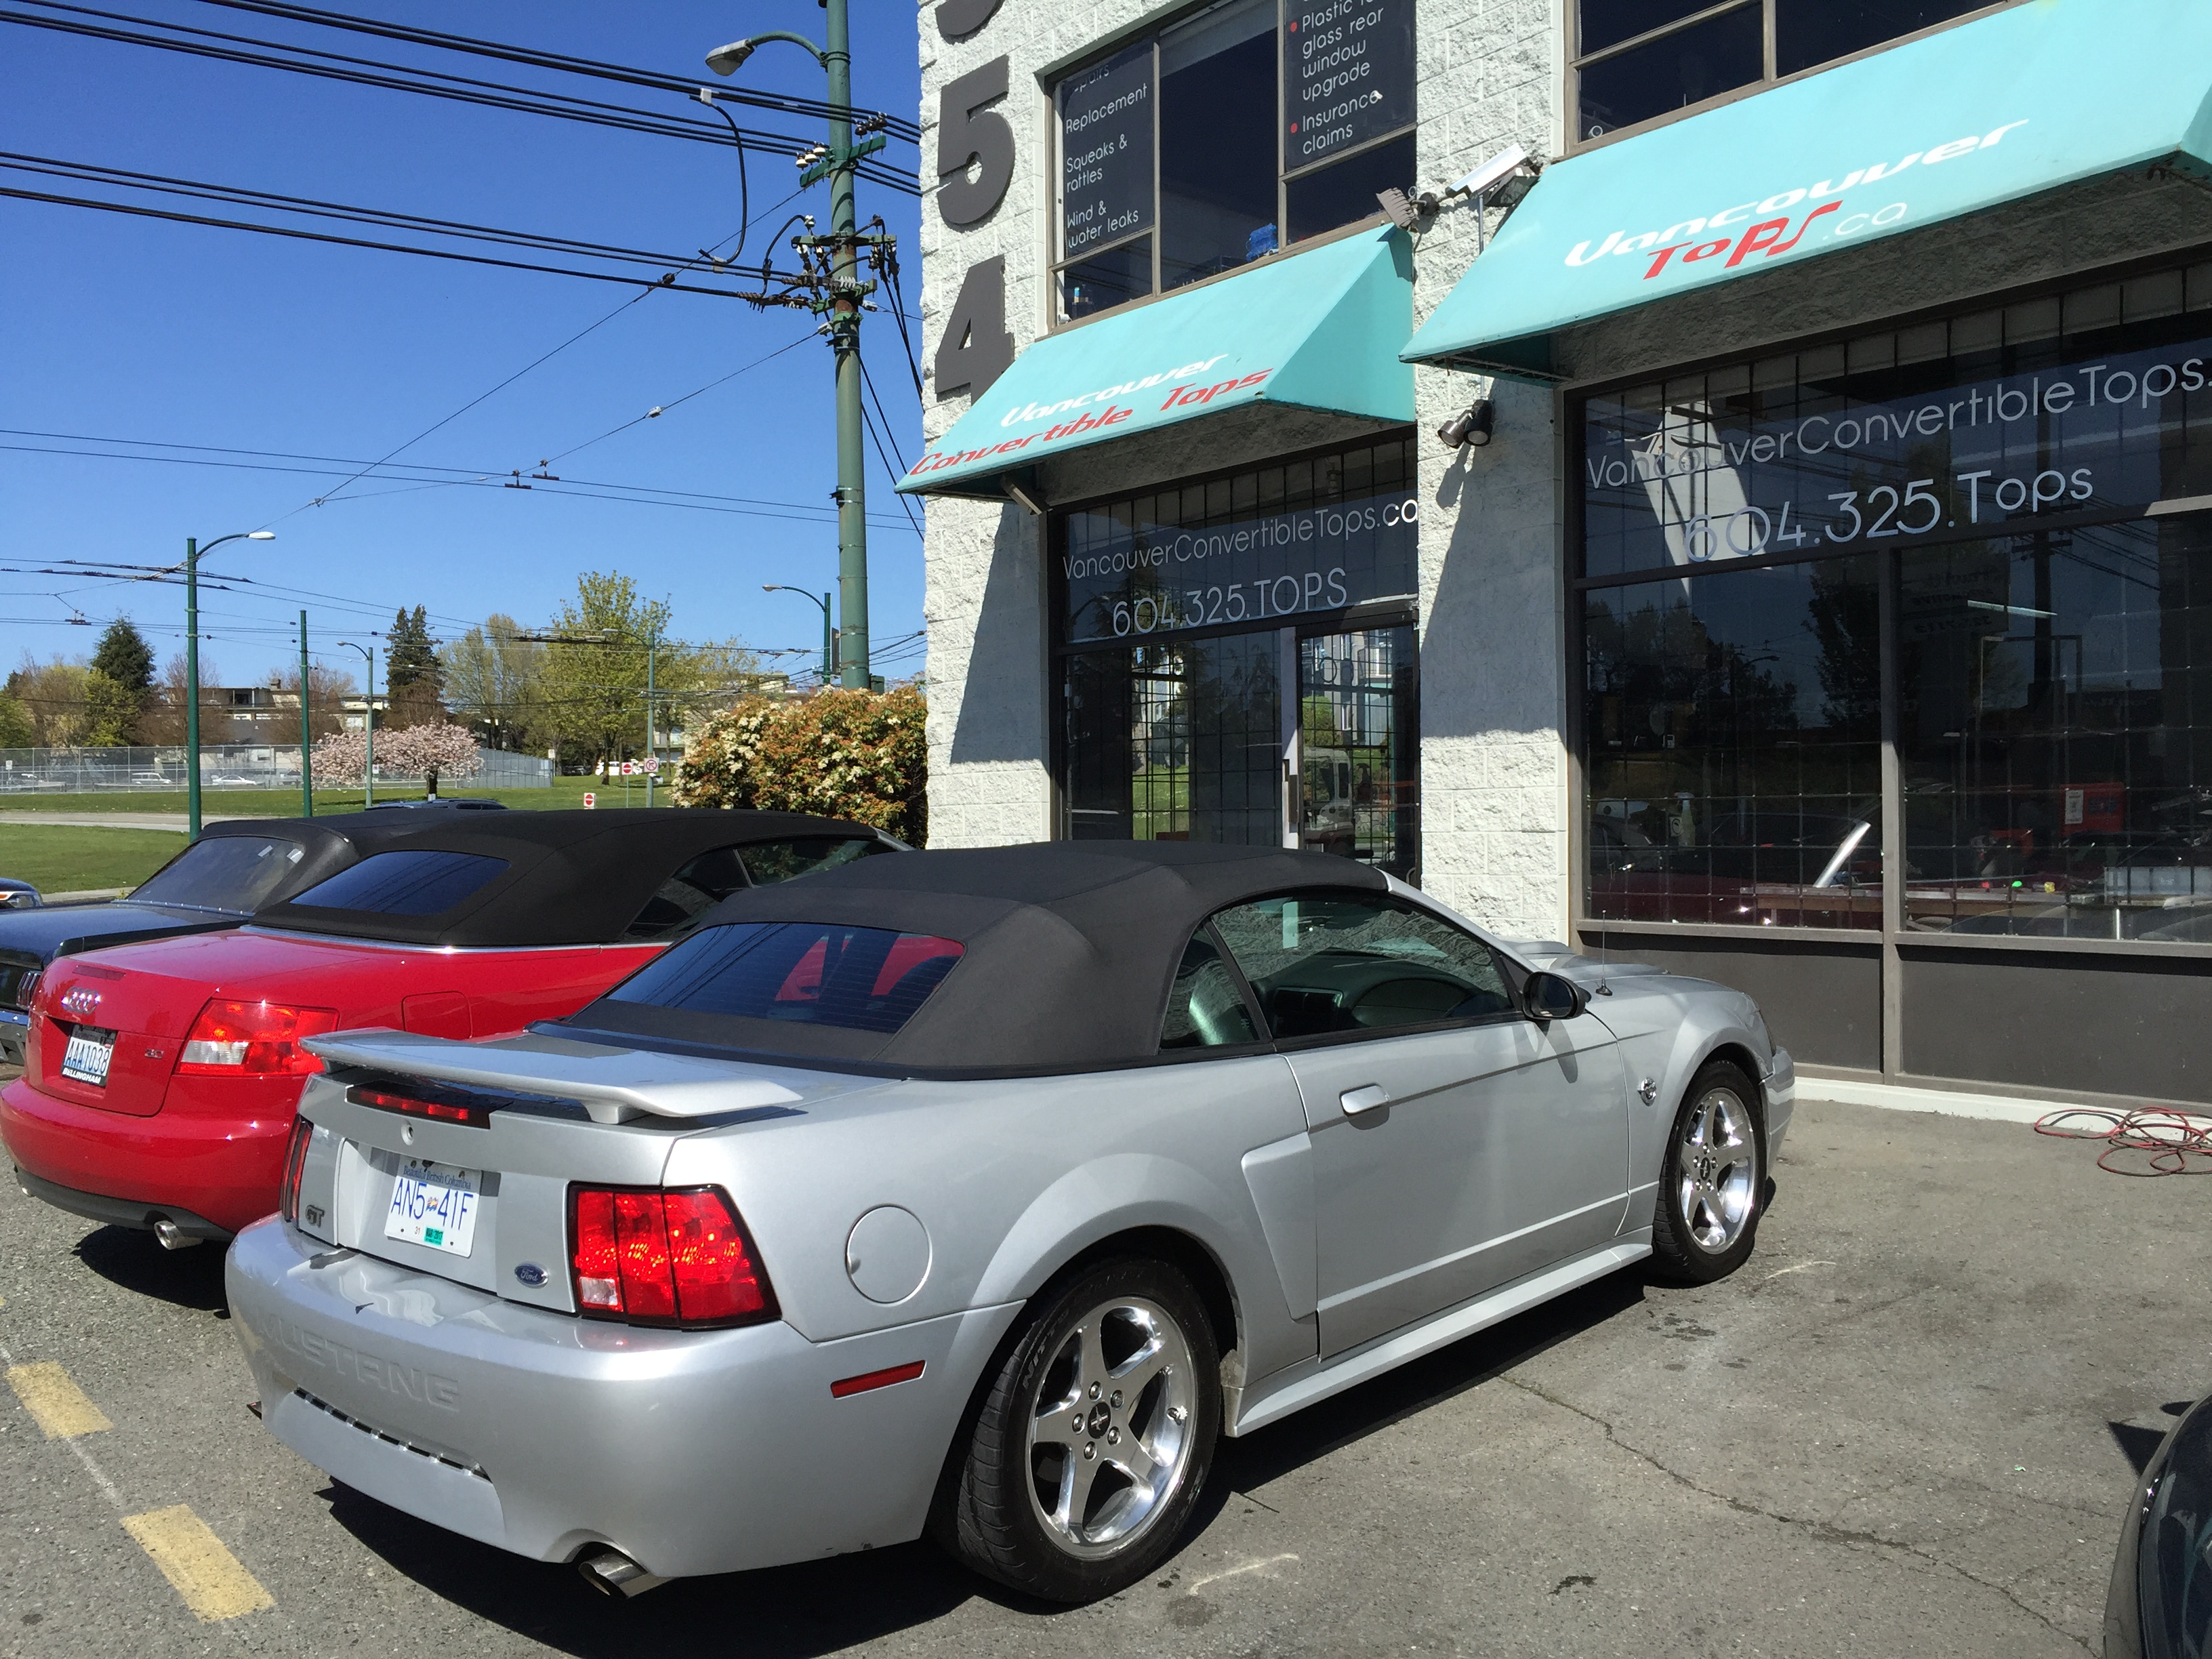 Photo Gallery - Vancouver Convertible Tops